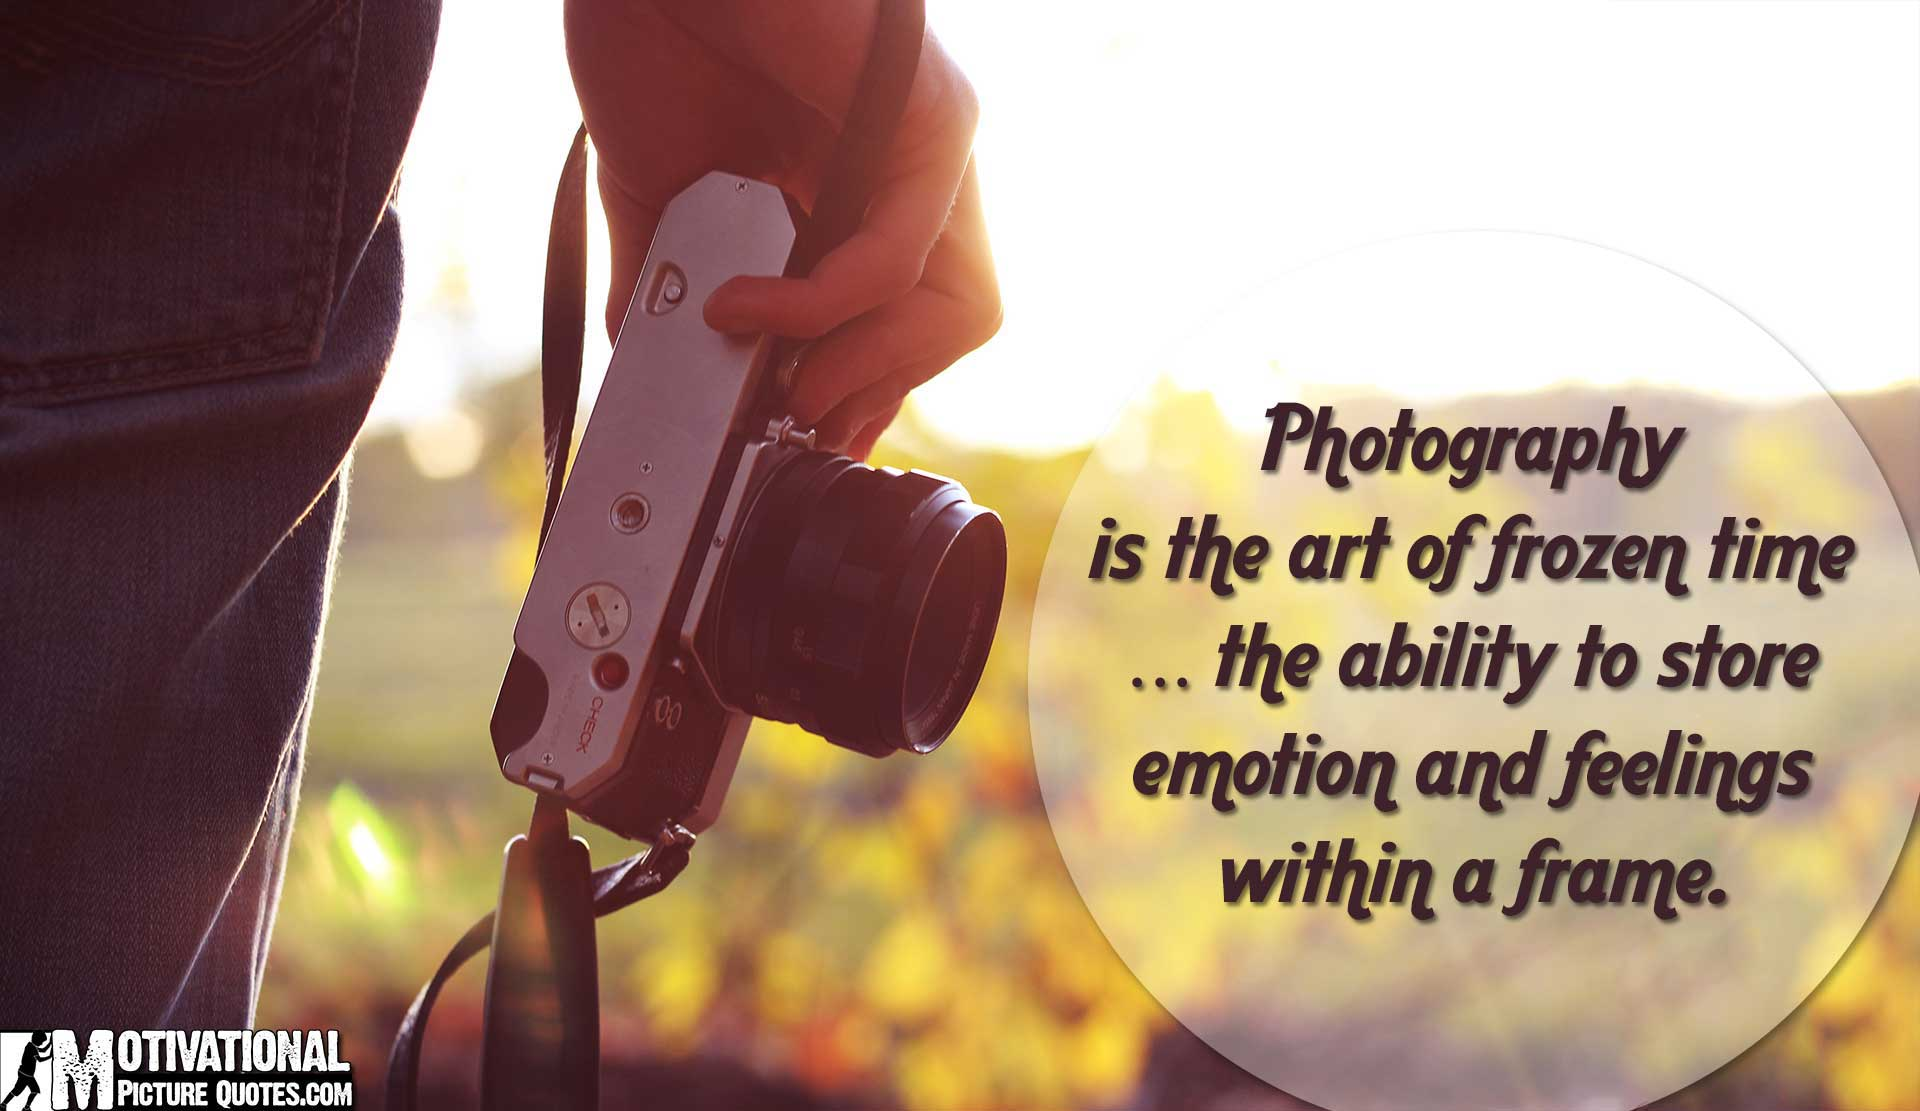 Quotes About Taking Pictures 12+ Short Inspirational Photography Quotes Quotes About Taking Pictures